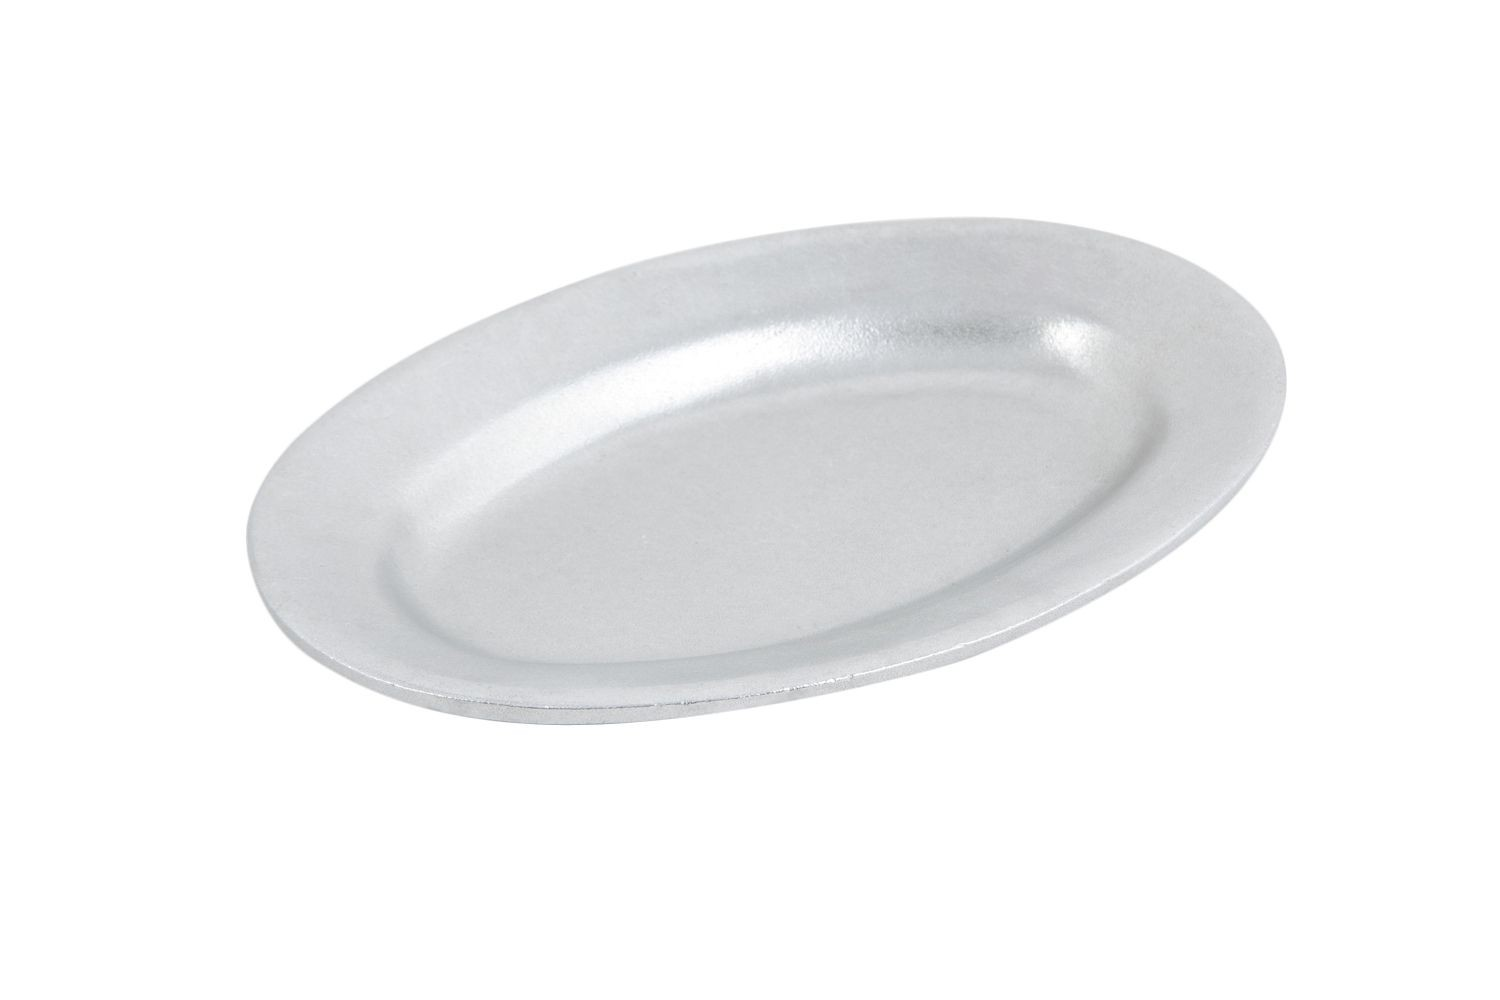 "Bon Chef 2010P Oval Serving Platter, Pewter Glo 6"" x 9"", Set of 3"